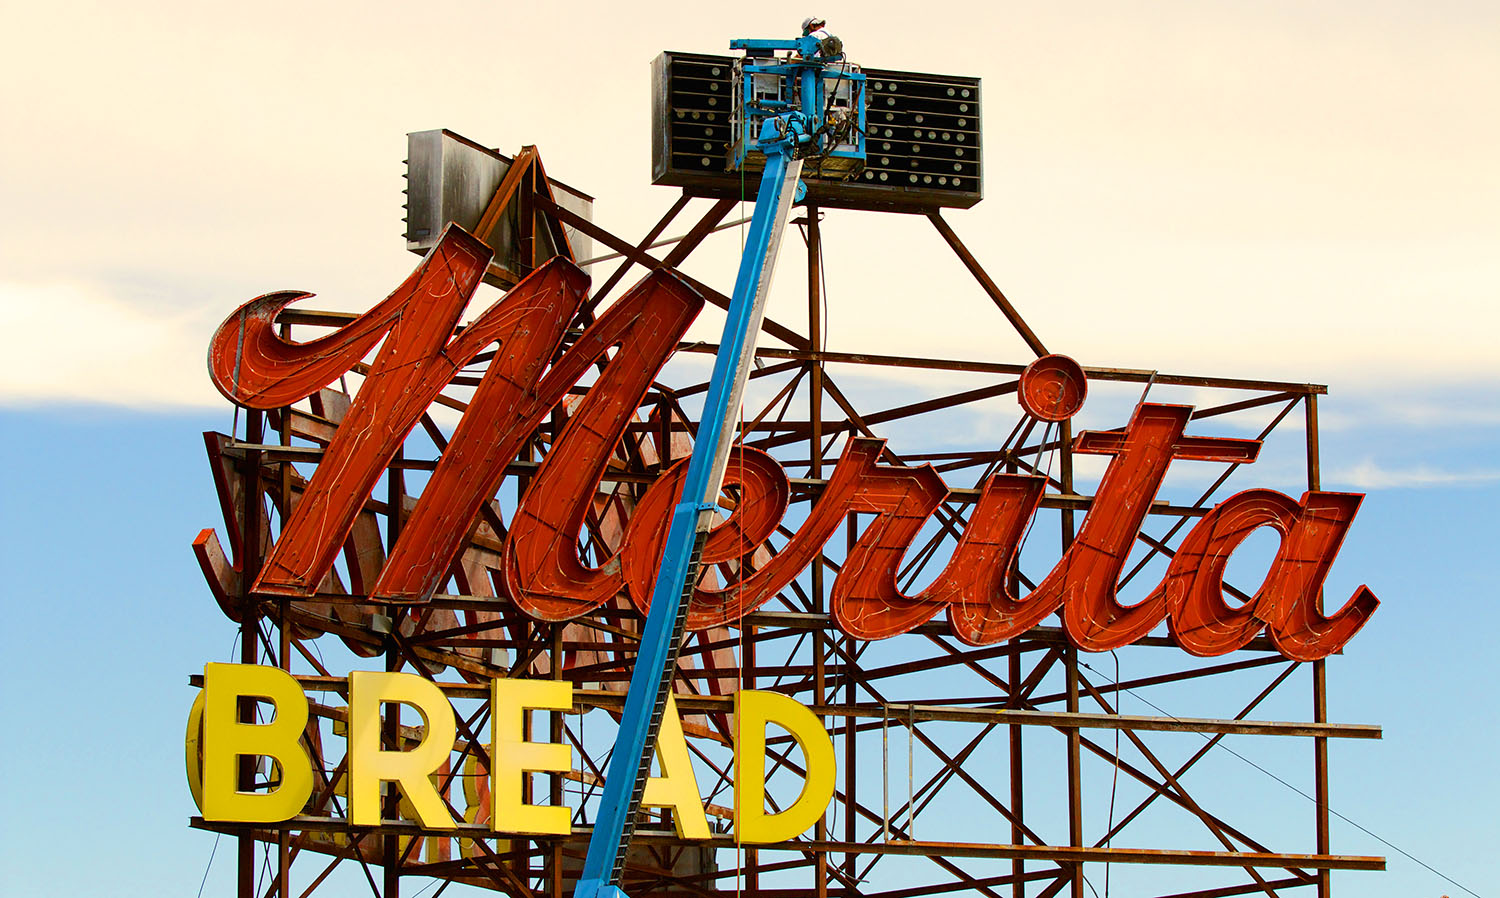 The Morse Museum of American Art removes the sign for Merita Bread to preserve in the museums collection of neon signs.